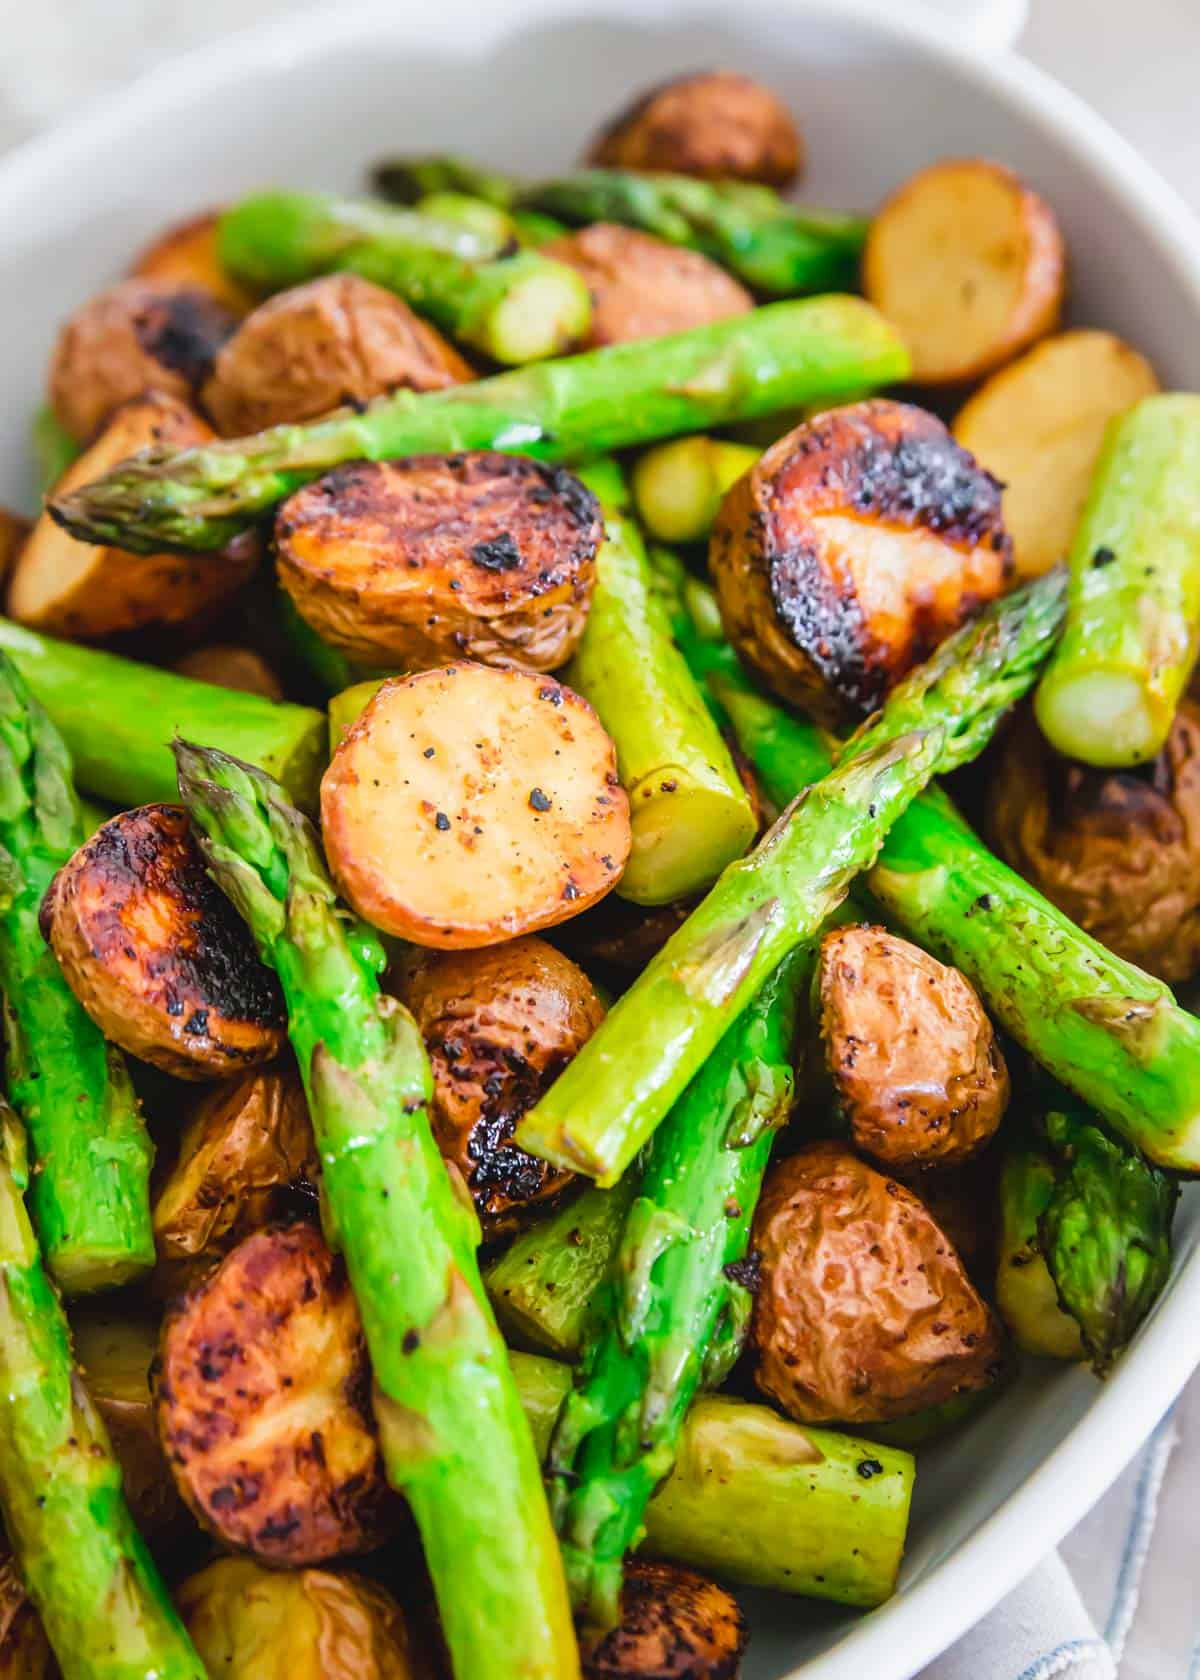 side dish of roasted potatoes and asparagus with garlic balsamic seasoning